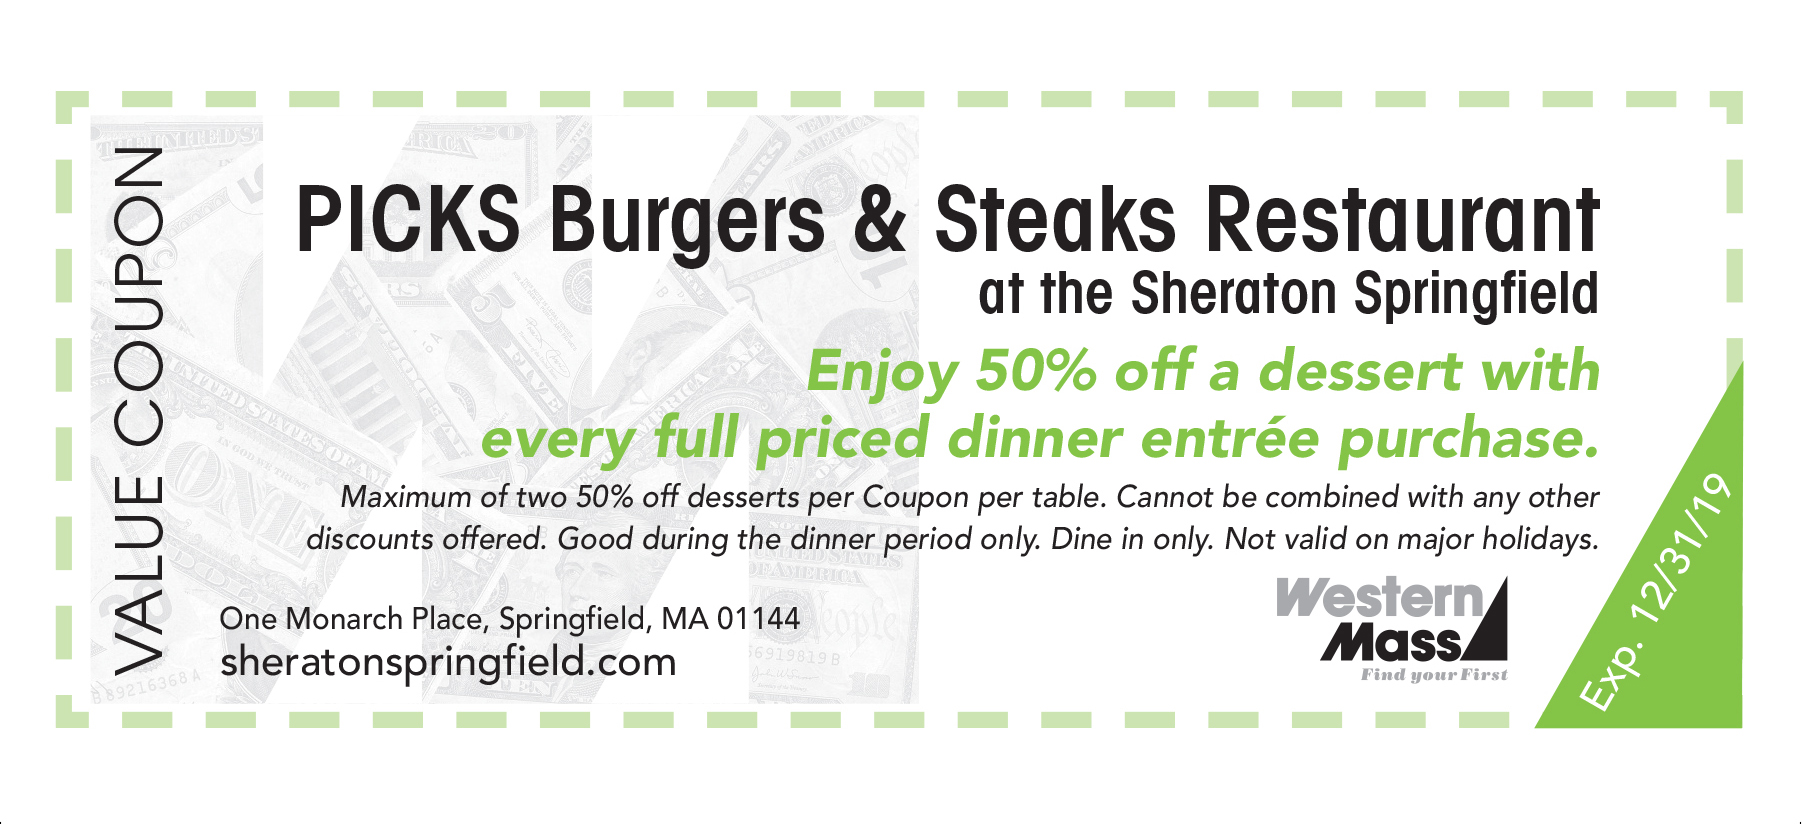 PICKS Burgers & Steaks Restaurant